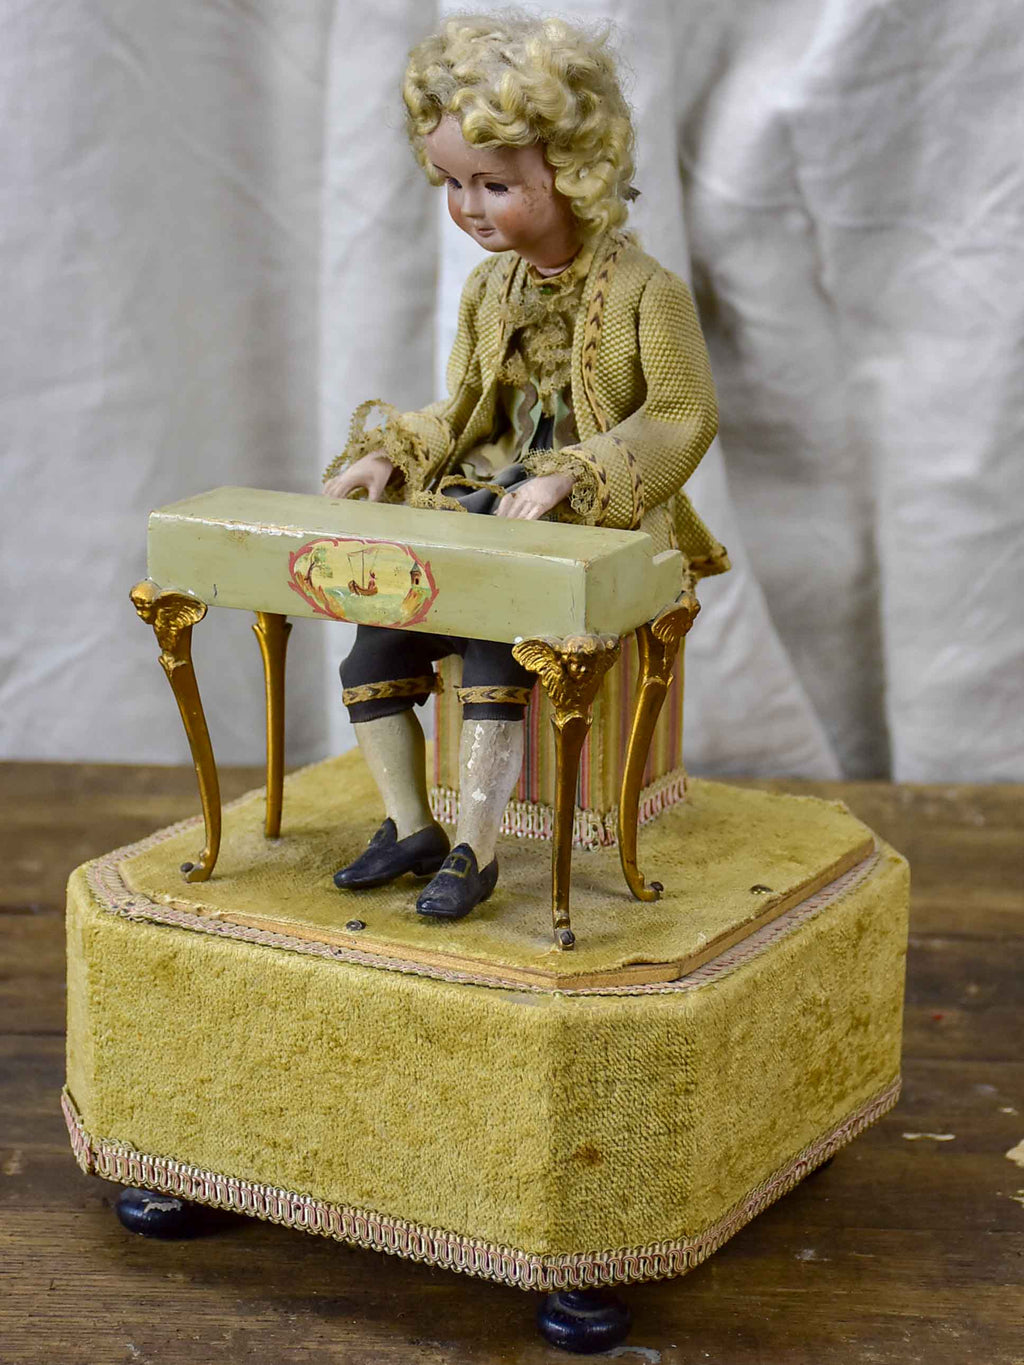 Early 20th Century German wind up toy of Mozart playing piano